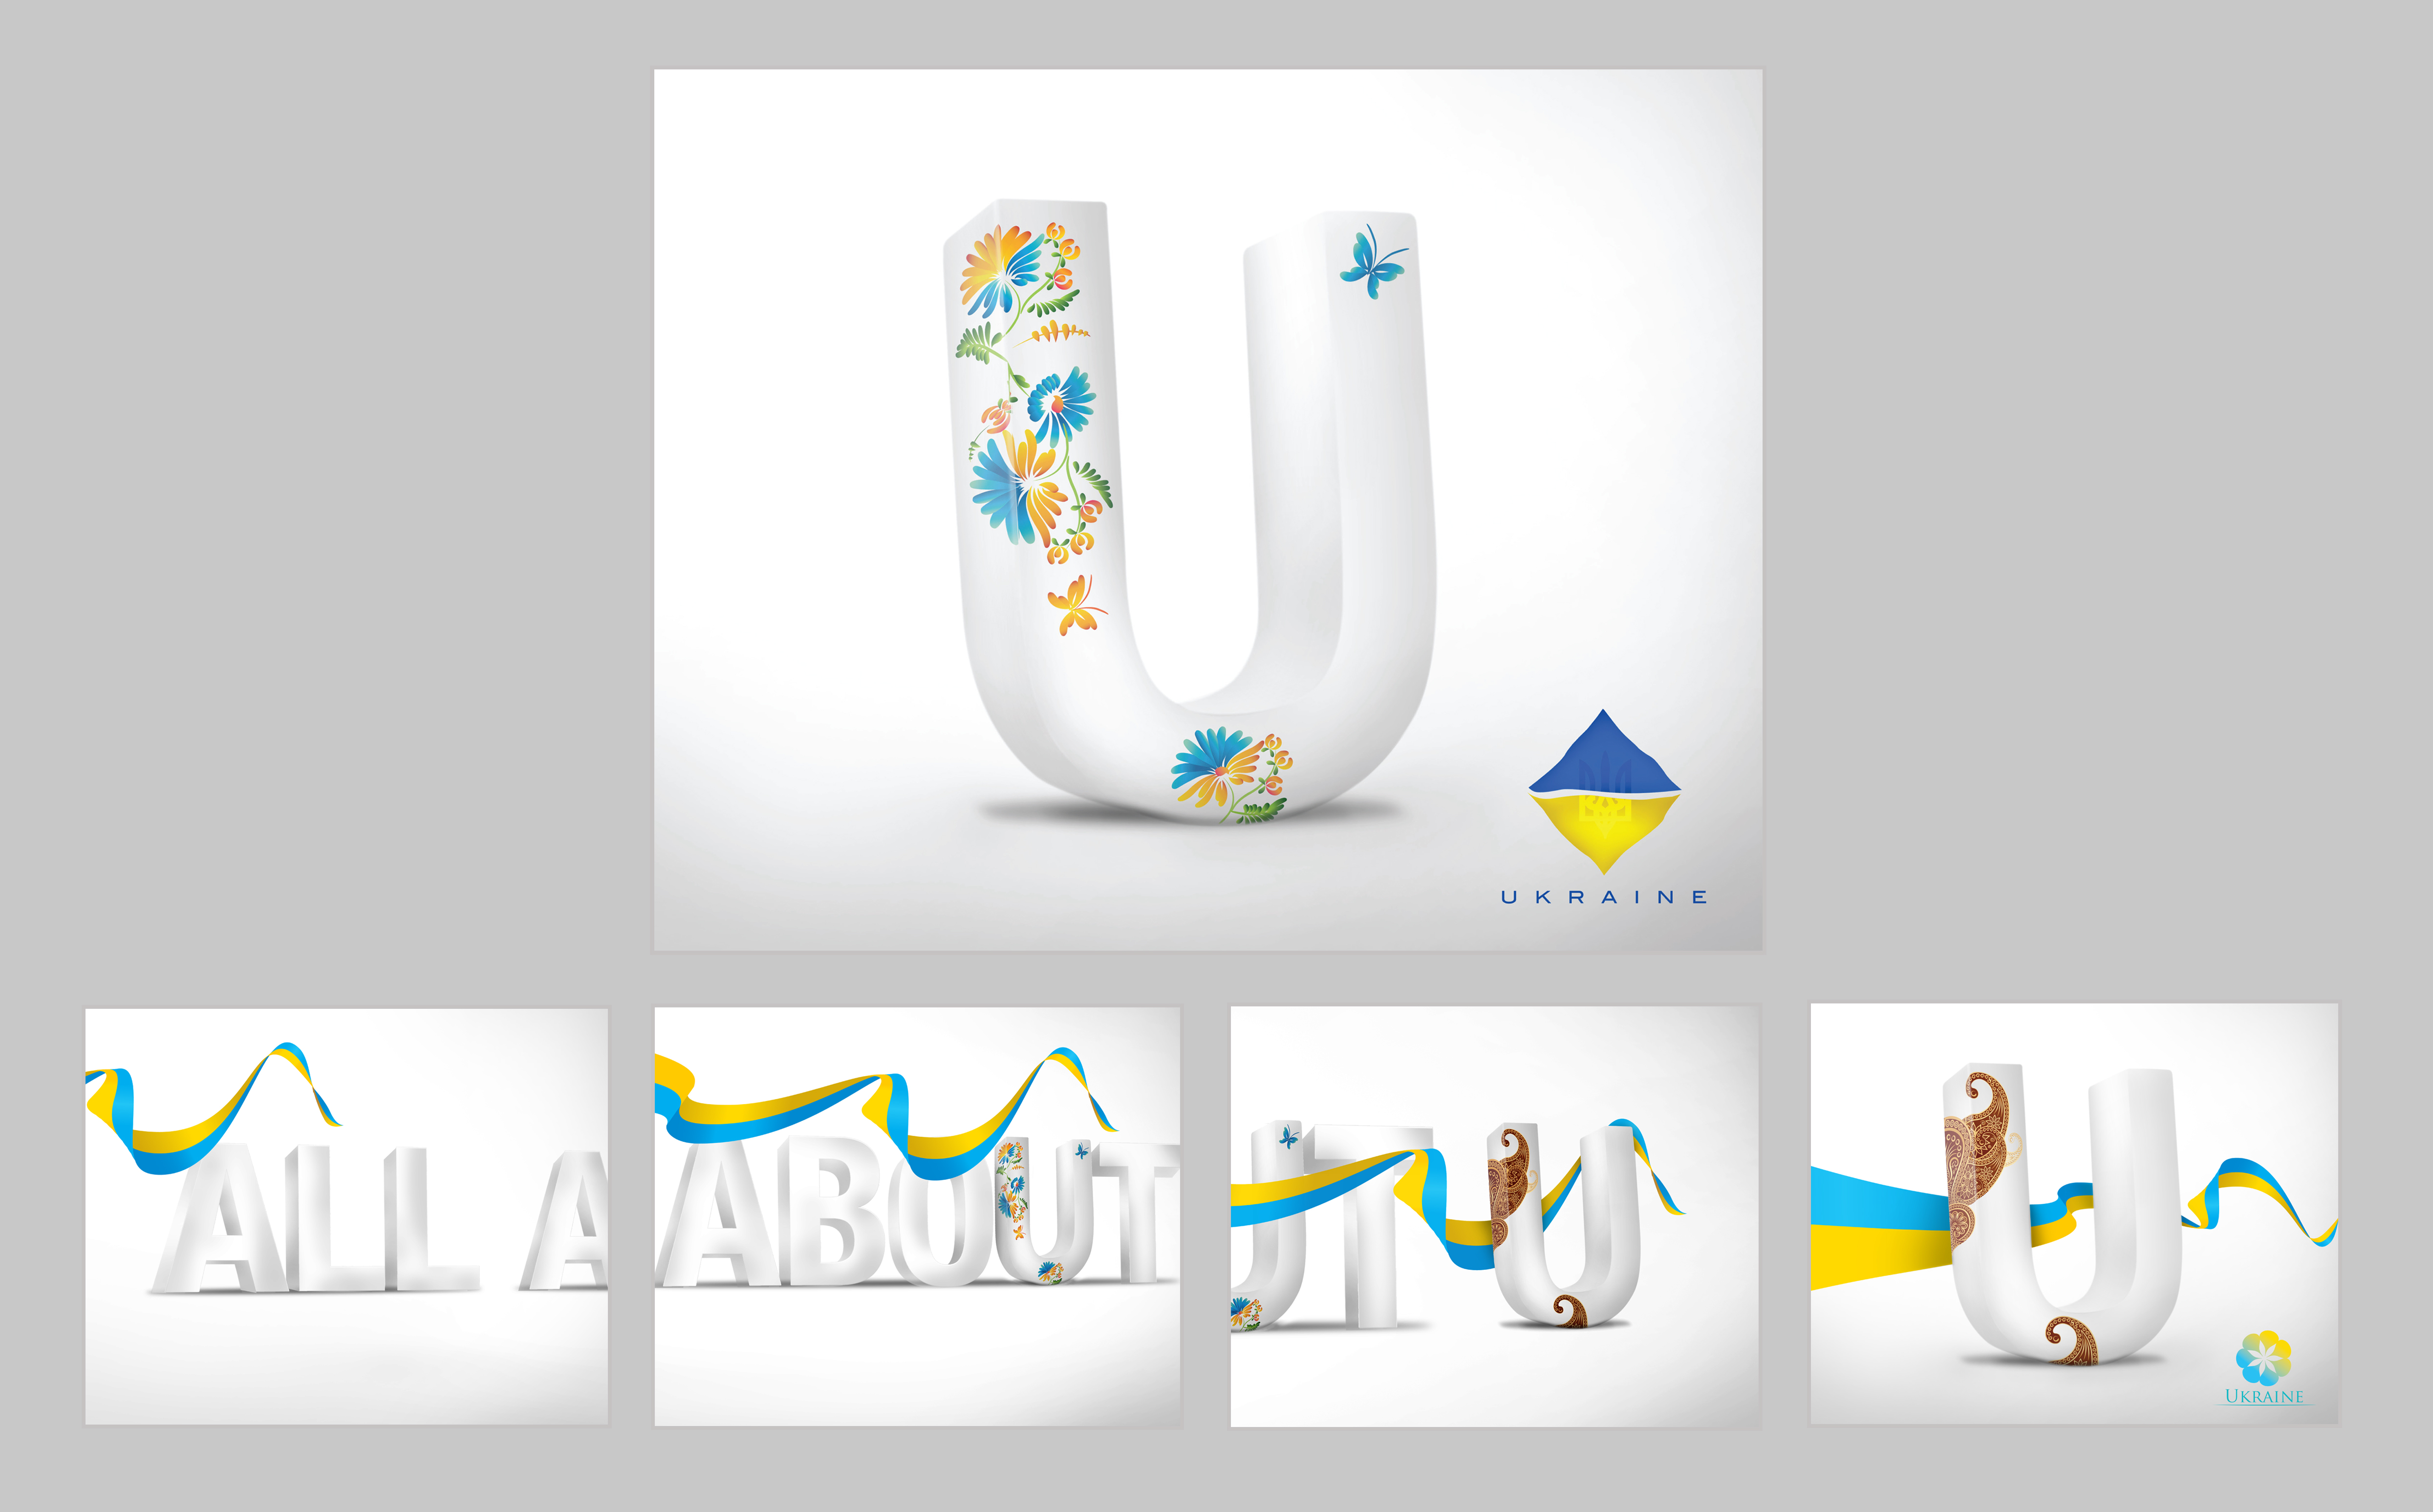 """""""Ukraine - It's All About You"""" endboard"""